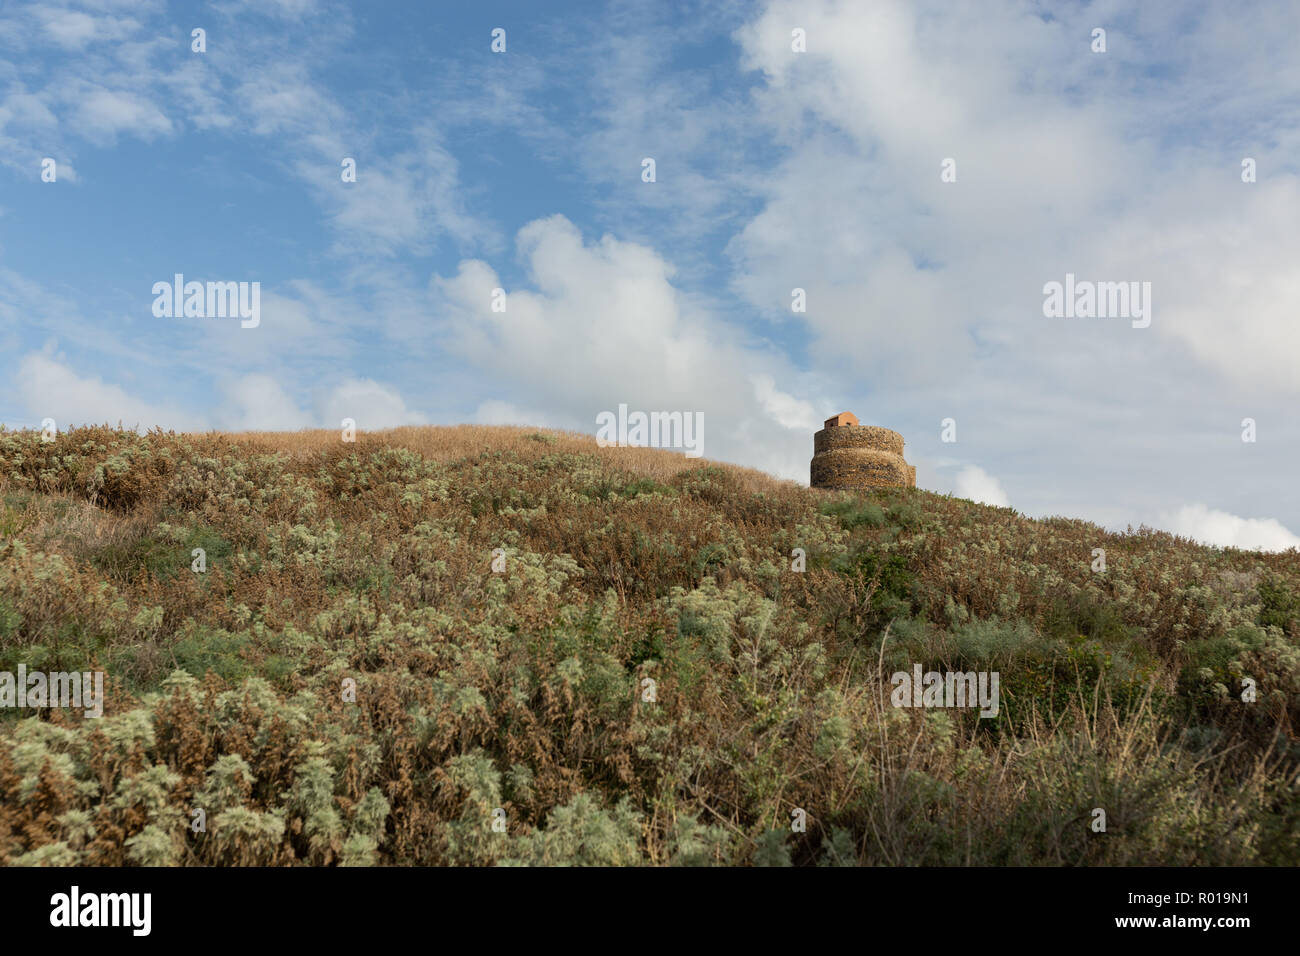 the 16th century Tower of Giovanni in the ruins of the ancient city of Tharros Stock Photo